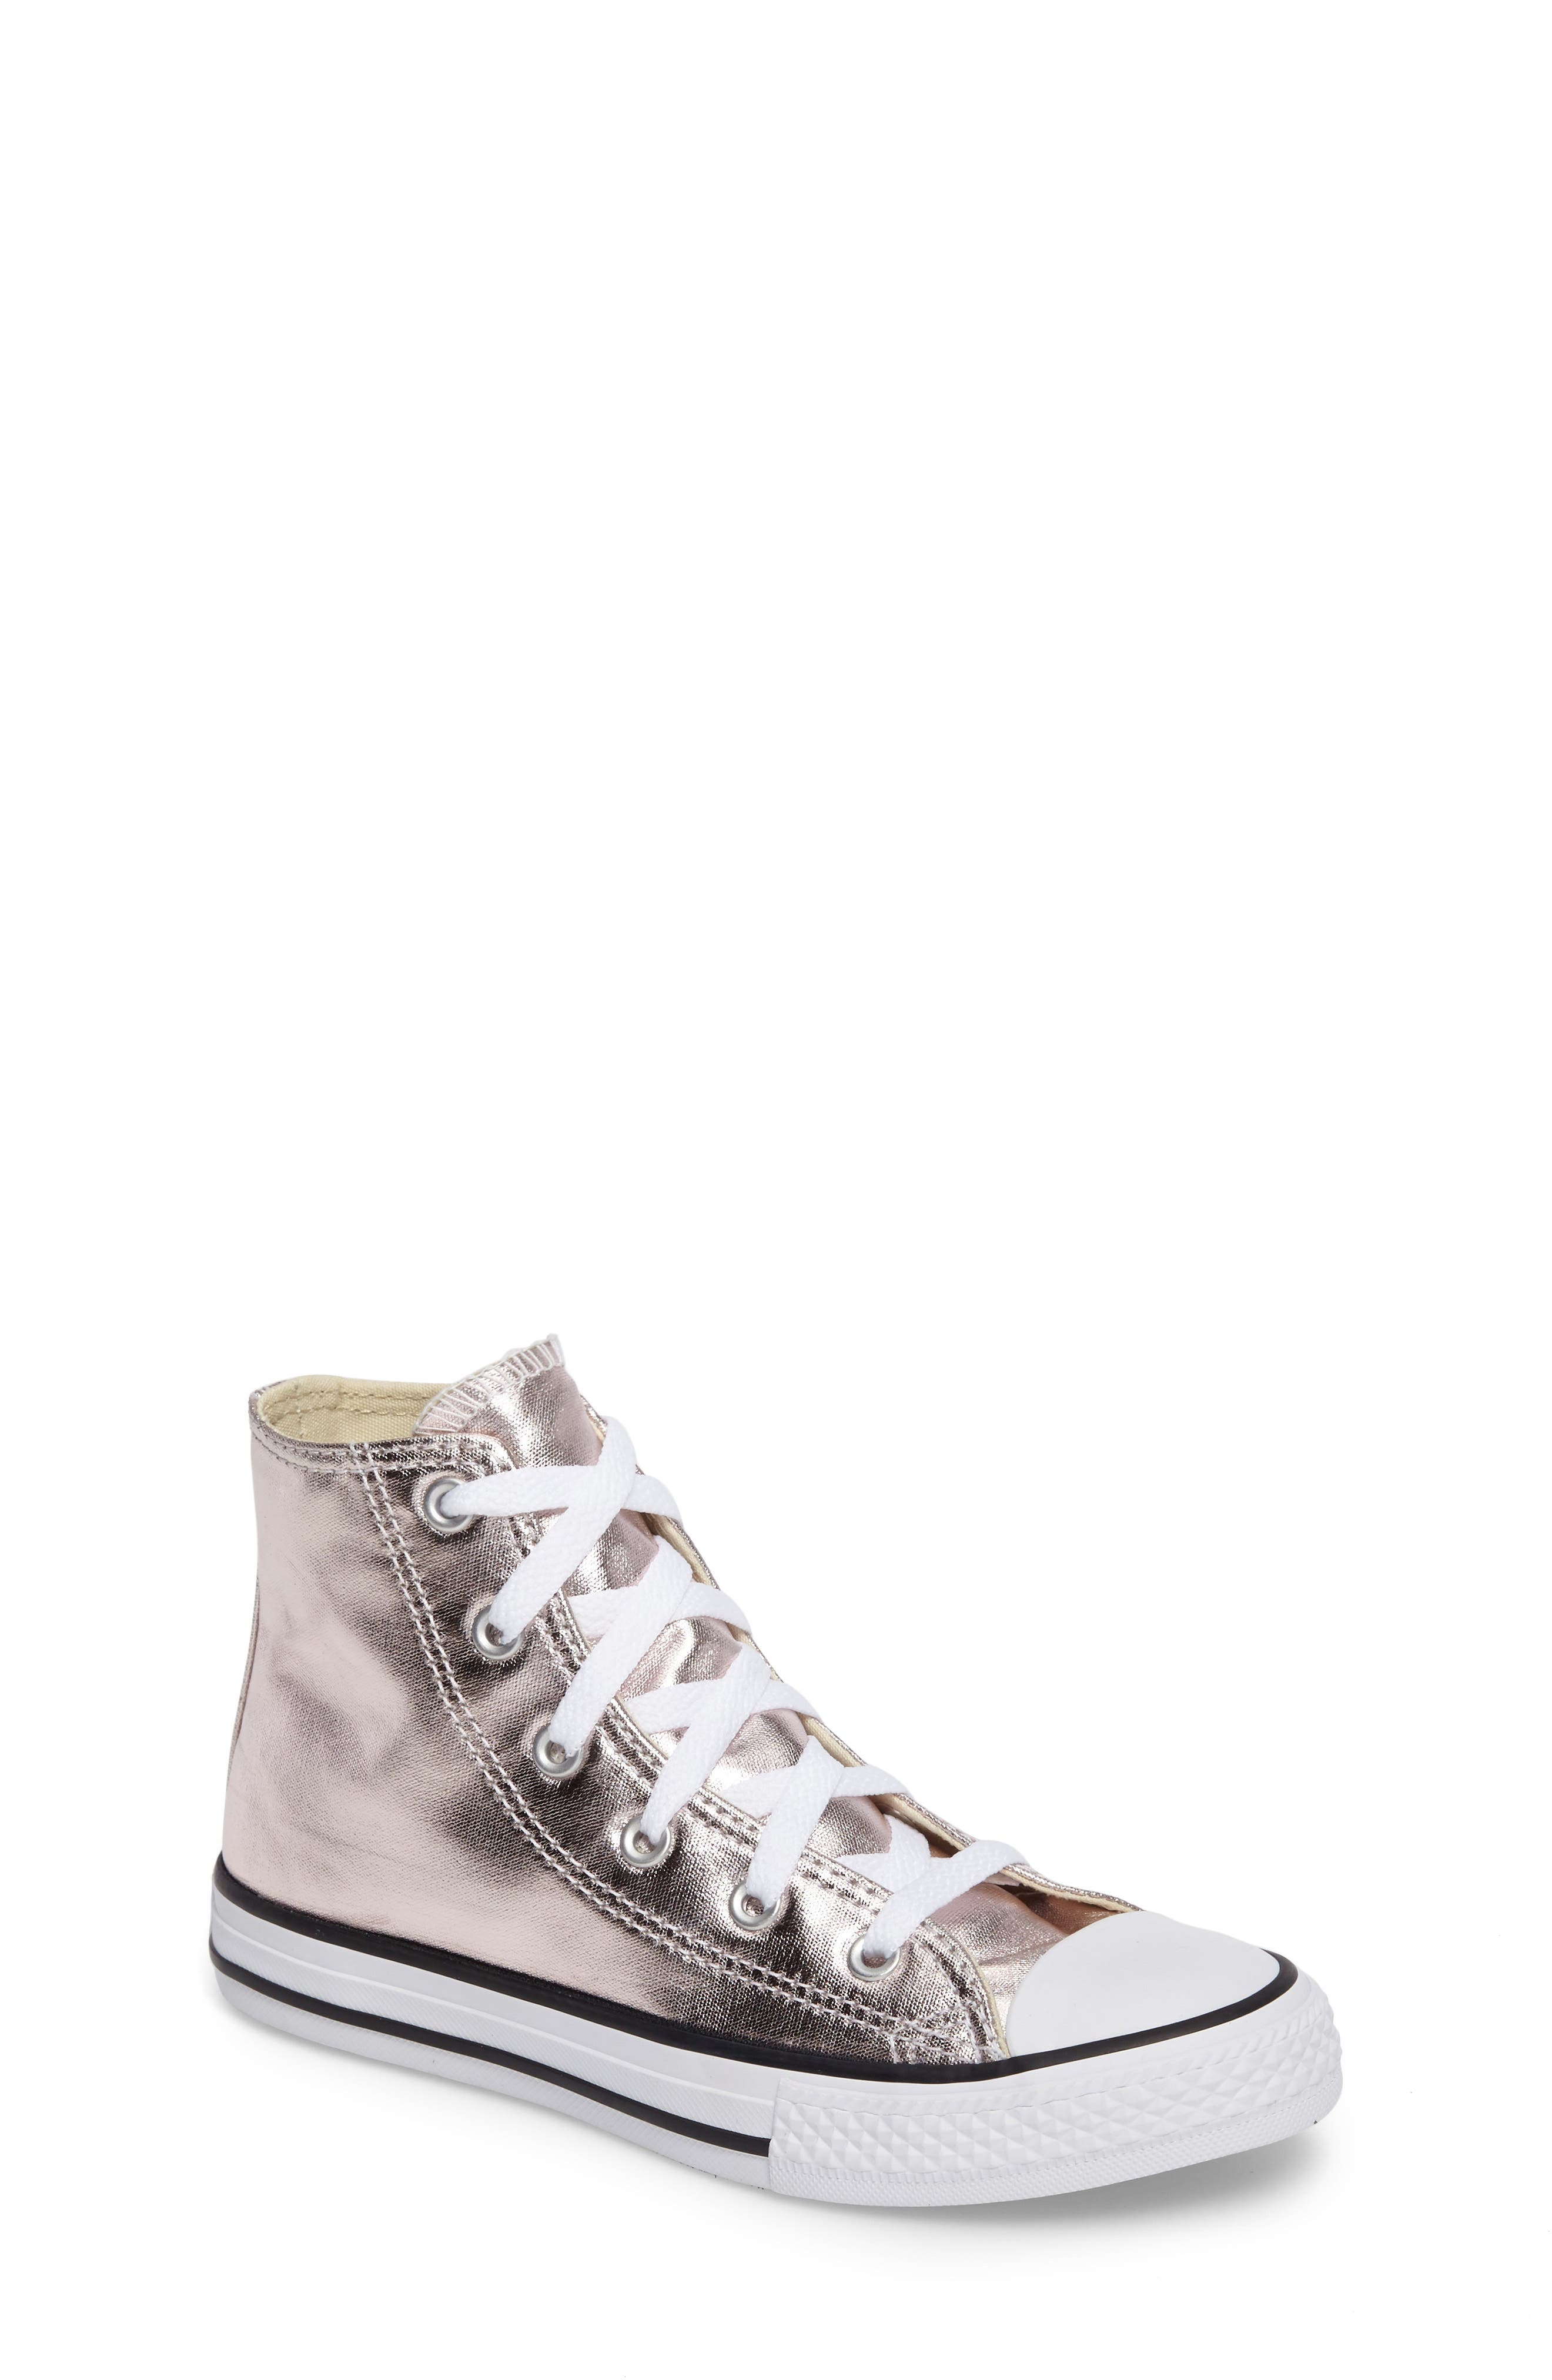 Converse Chuck Taylor® All Star® Seasonal Metallic High Top Sneaker (Toddler & Little Kid)